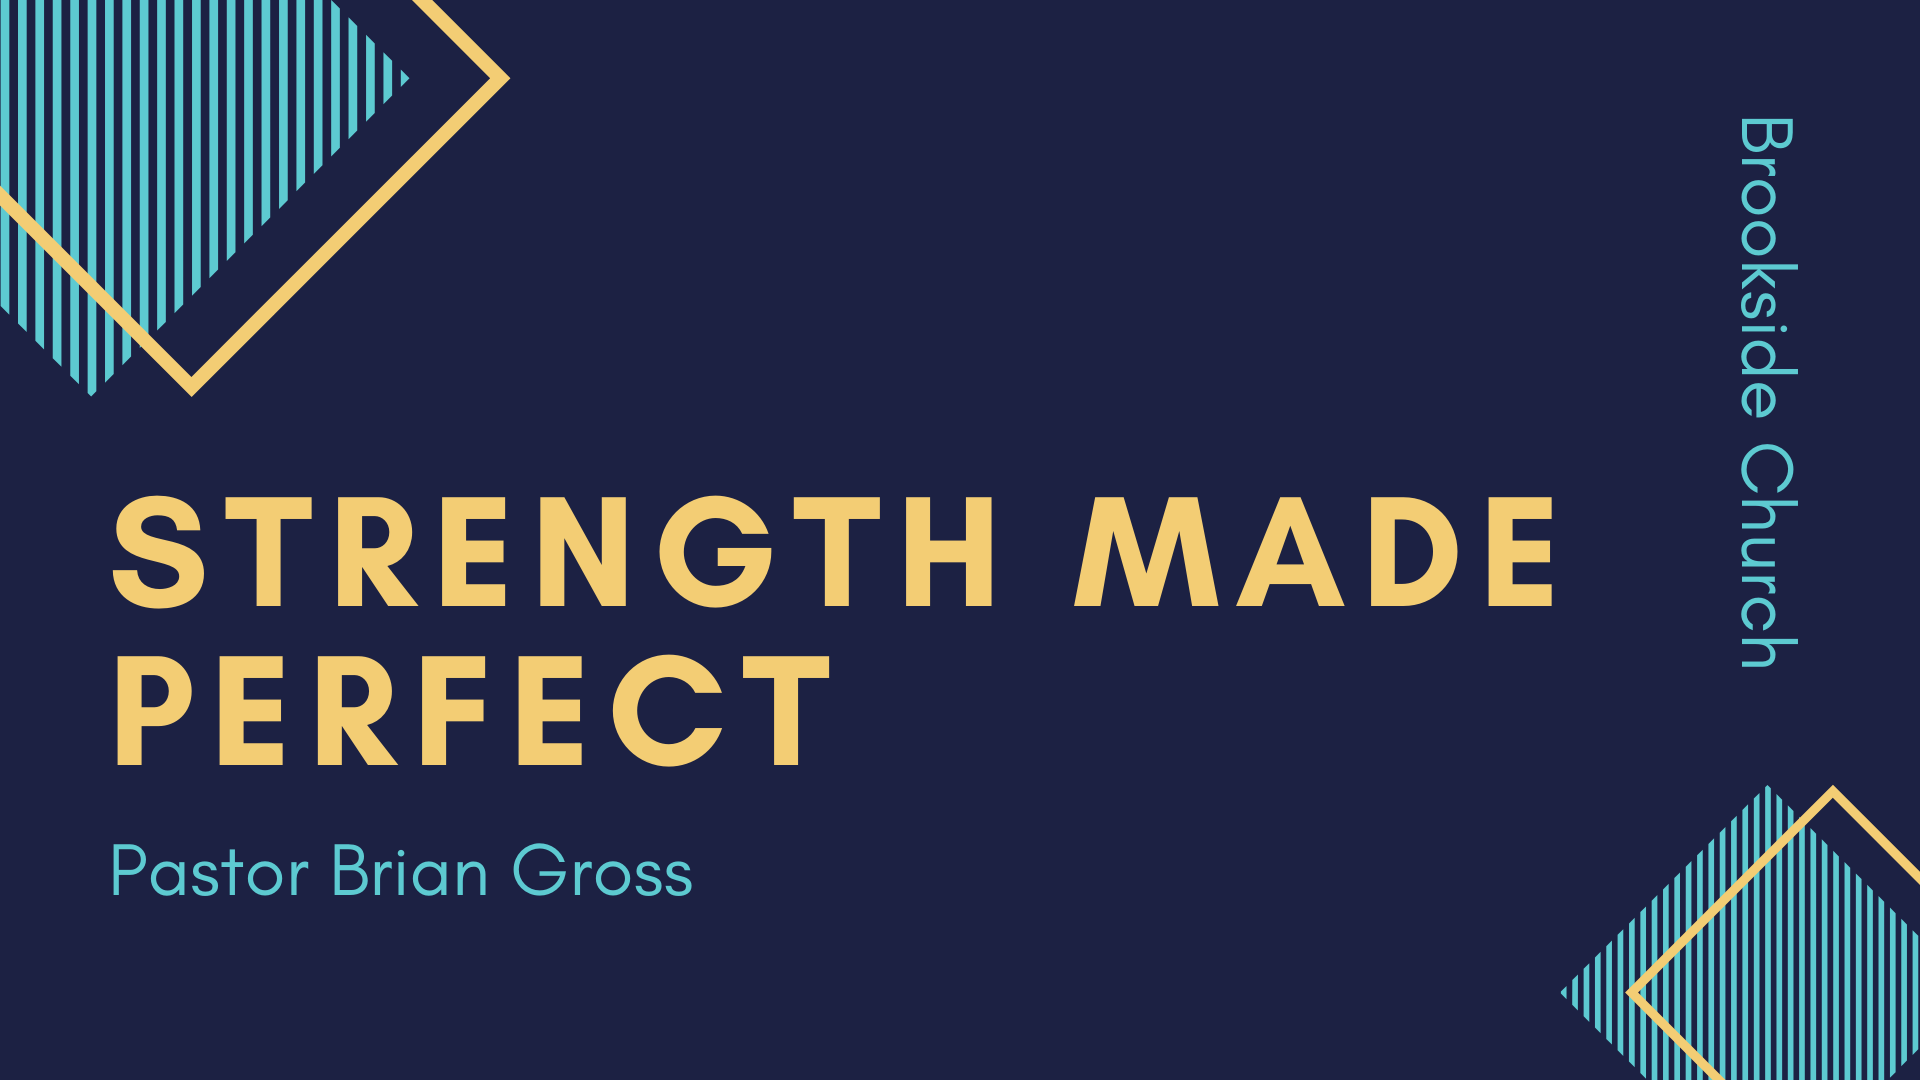 Strength Made Perfect